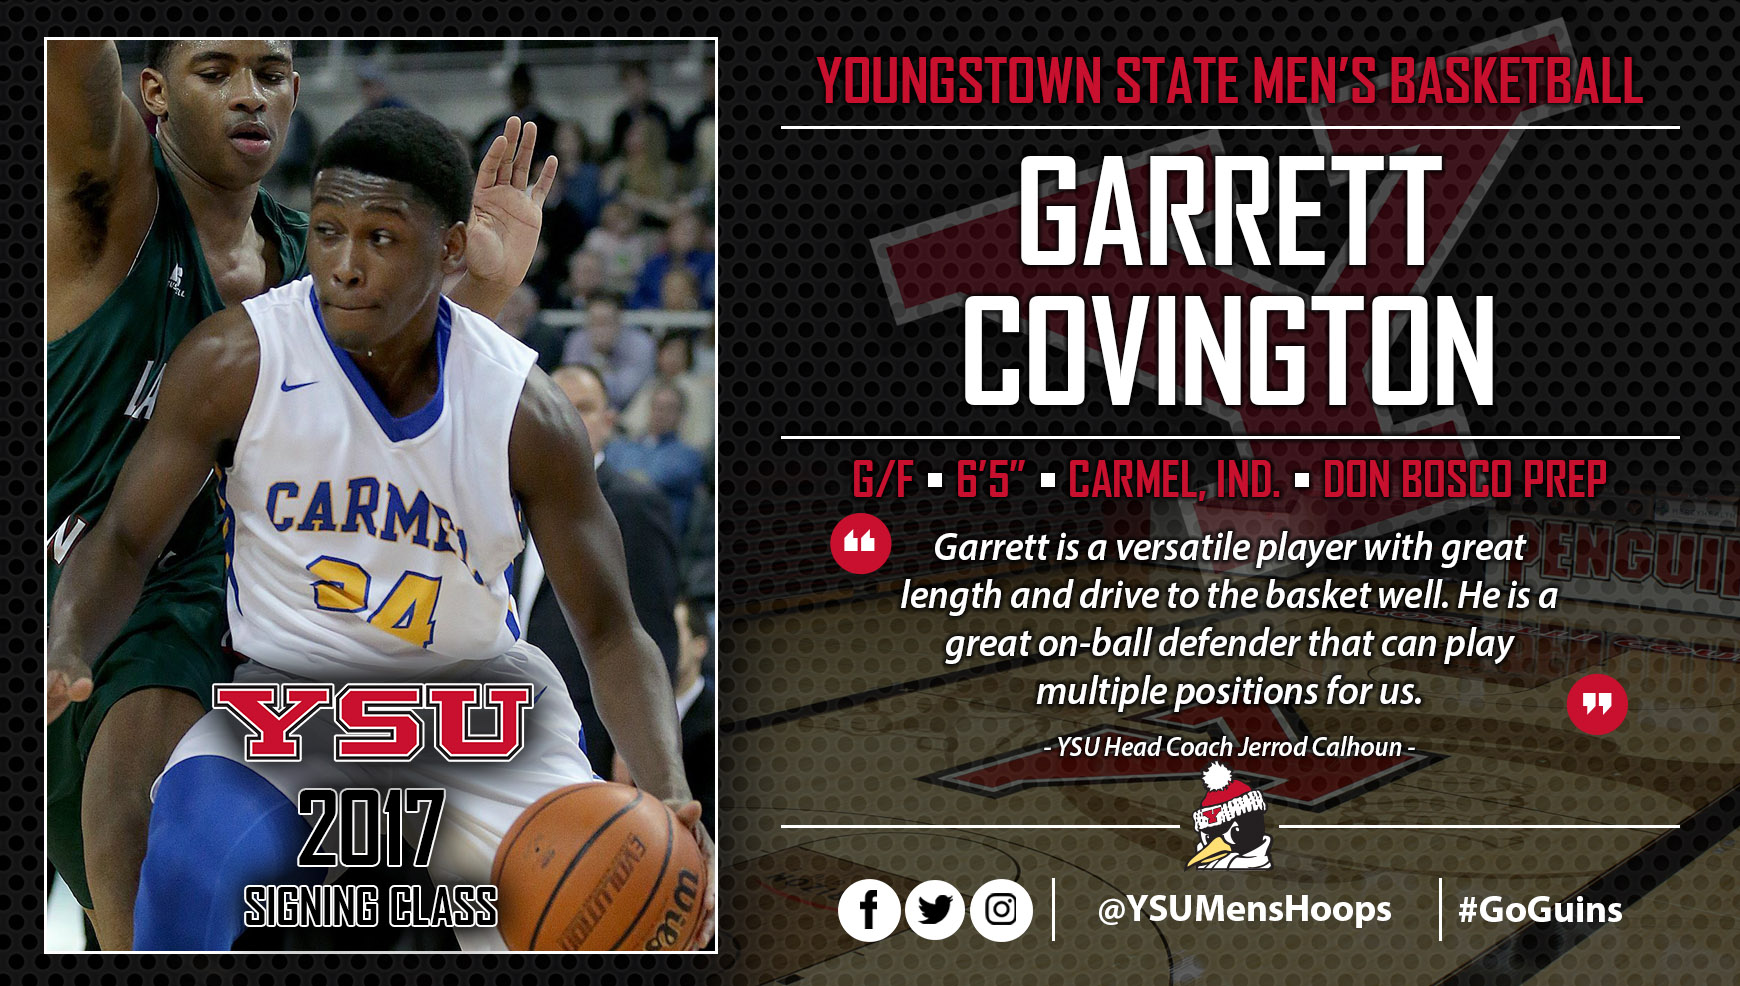 Garrett Covington Signs NLI with Youngstown State